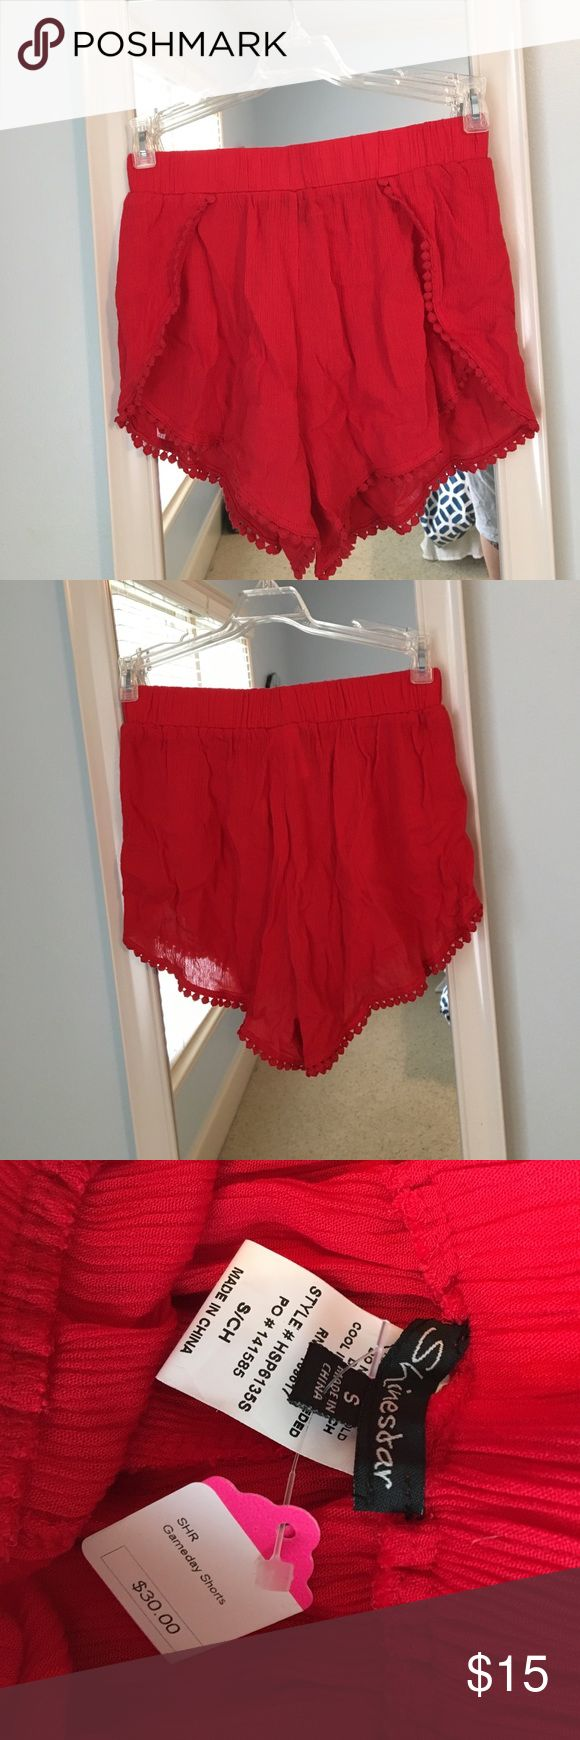 Game day shorts Shinestar red shorts. Size small. NWT. Perfect condition! Great for college game days! Shorts